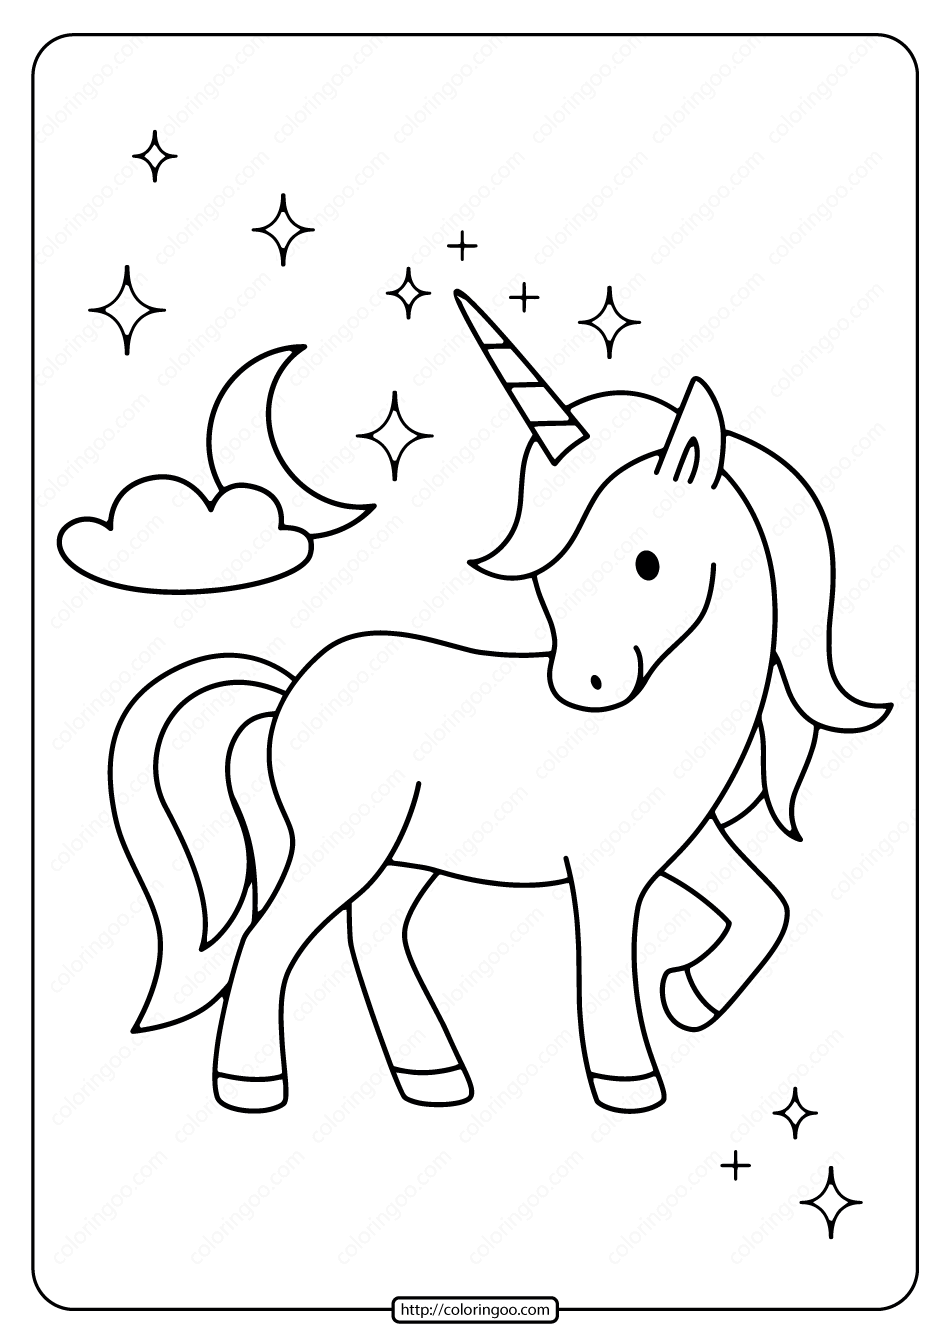 coloring sheet unicorn coloring pictures to print unicorn coloring pages cool2bkids coloring coloring print unicorn to pictures sheet